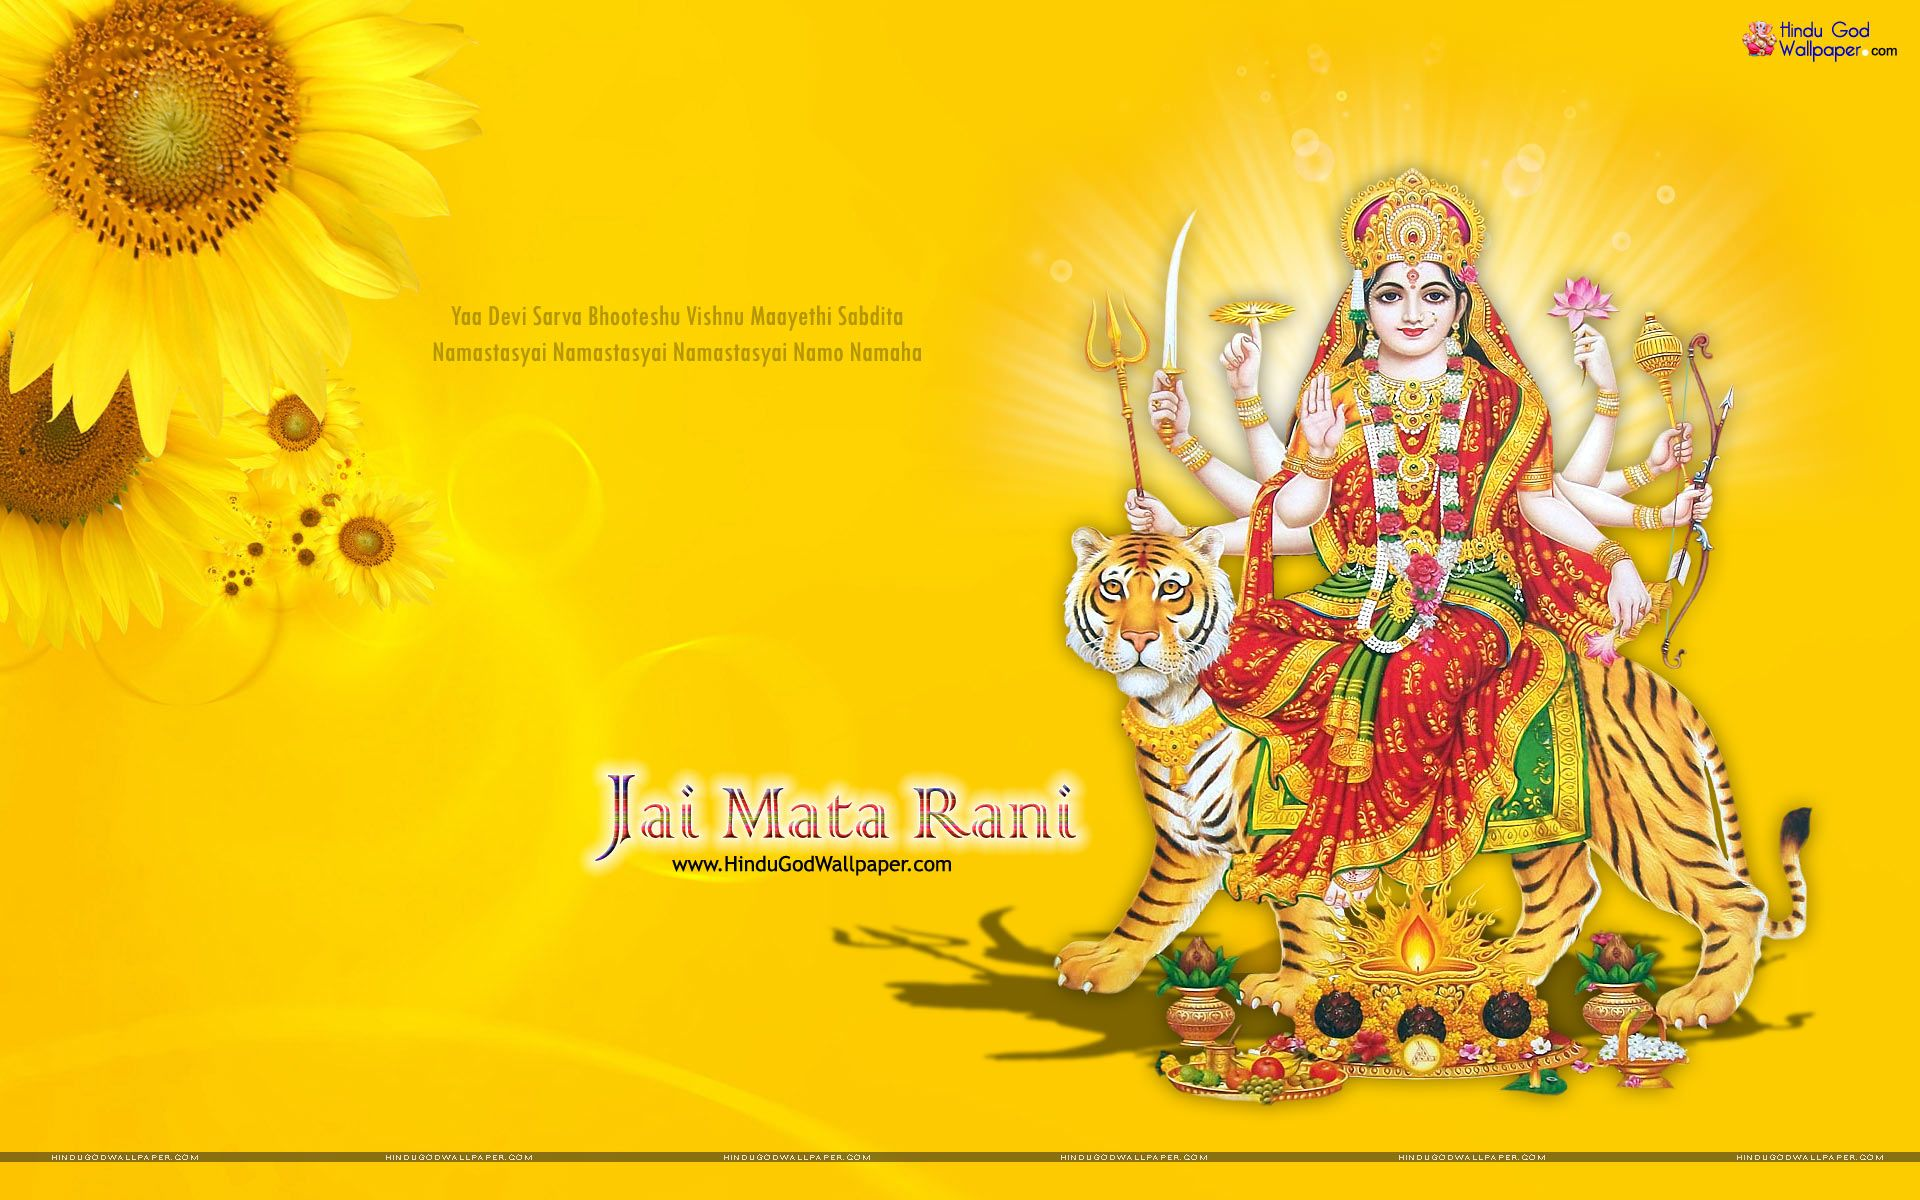 Wallpaper download mata rani - Mata Rani Wallpapers Images And Photos Download